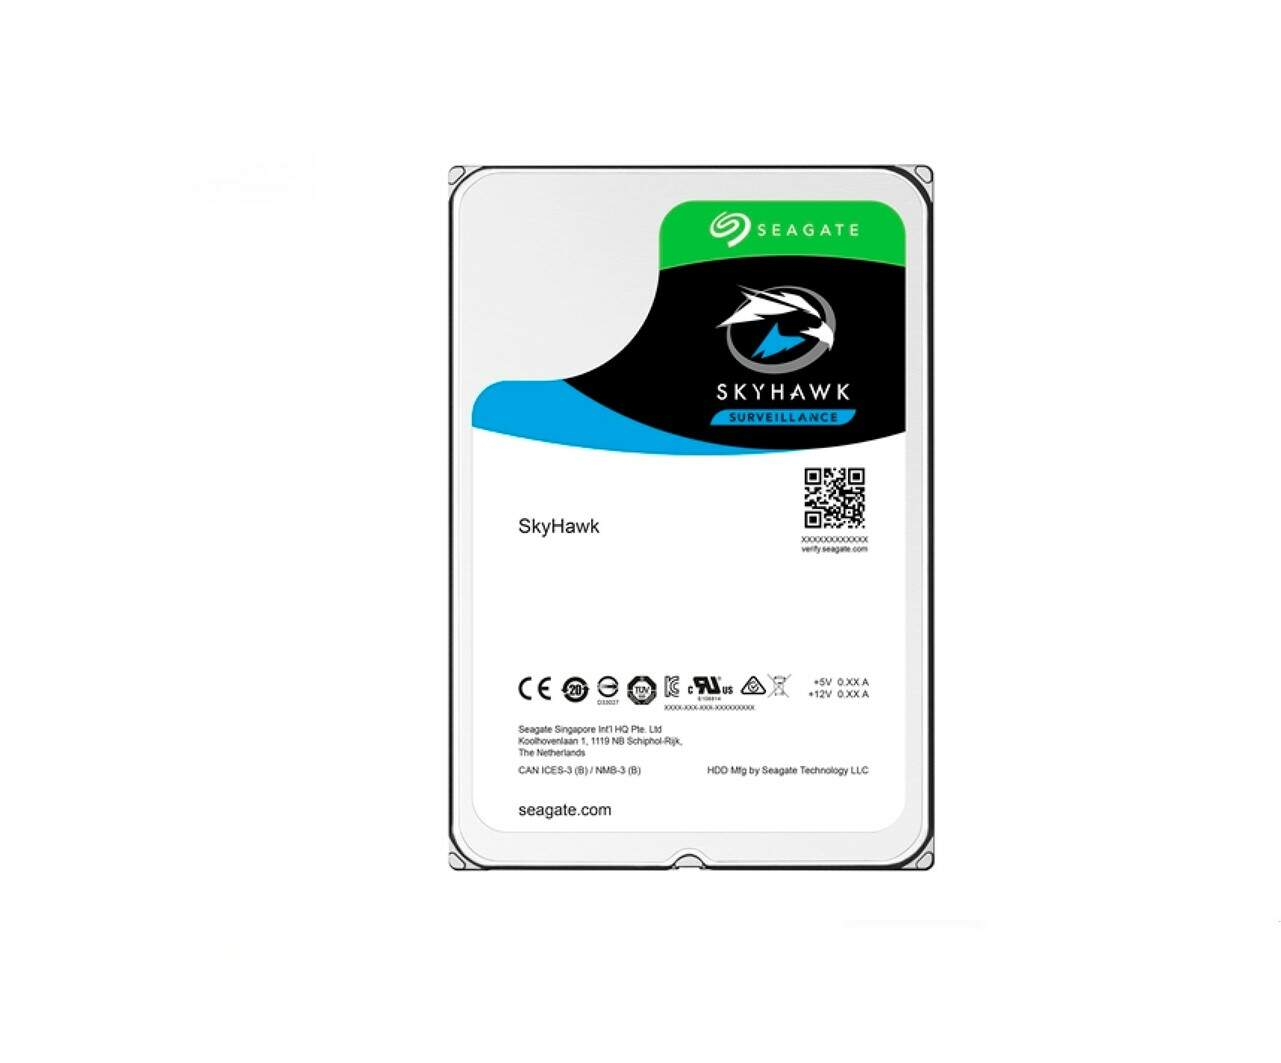 HD PC SKYHAWK SEAGATE 2TB GS0161 GIGA